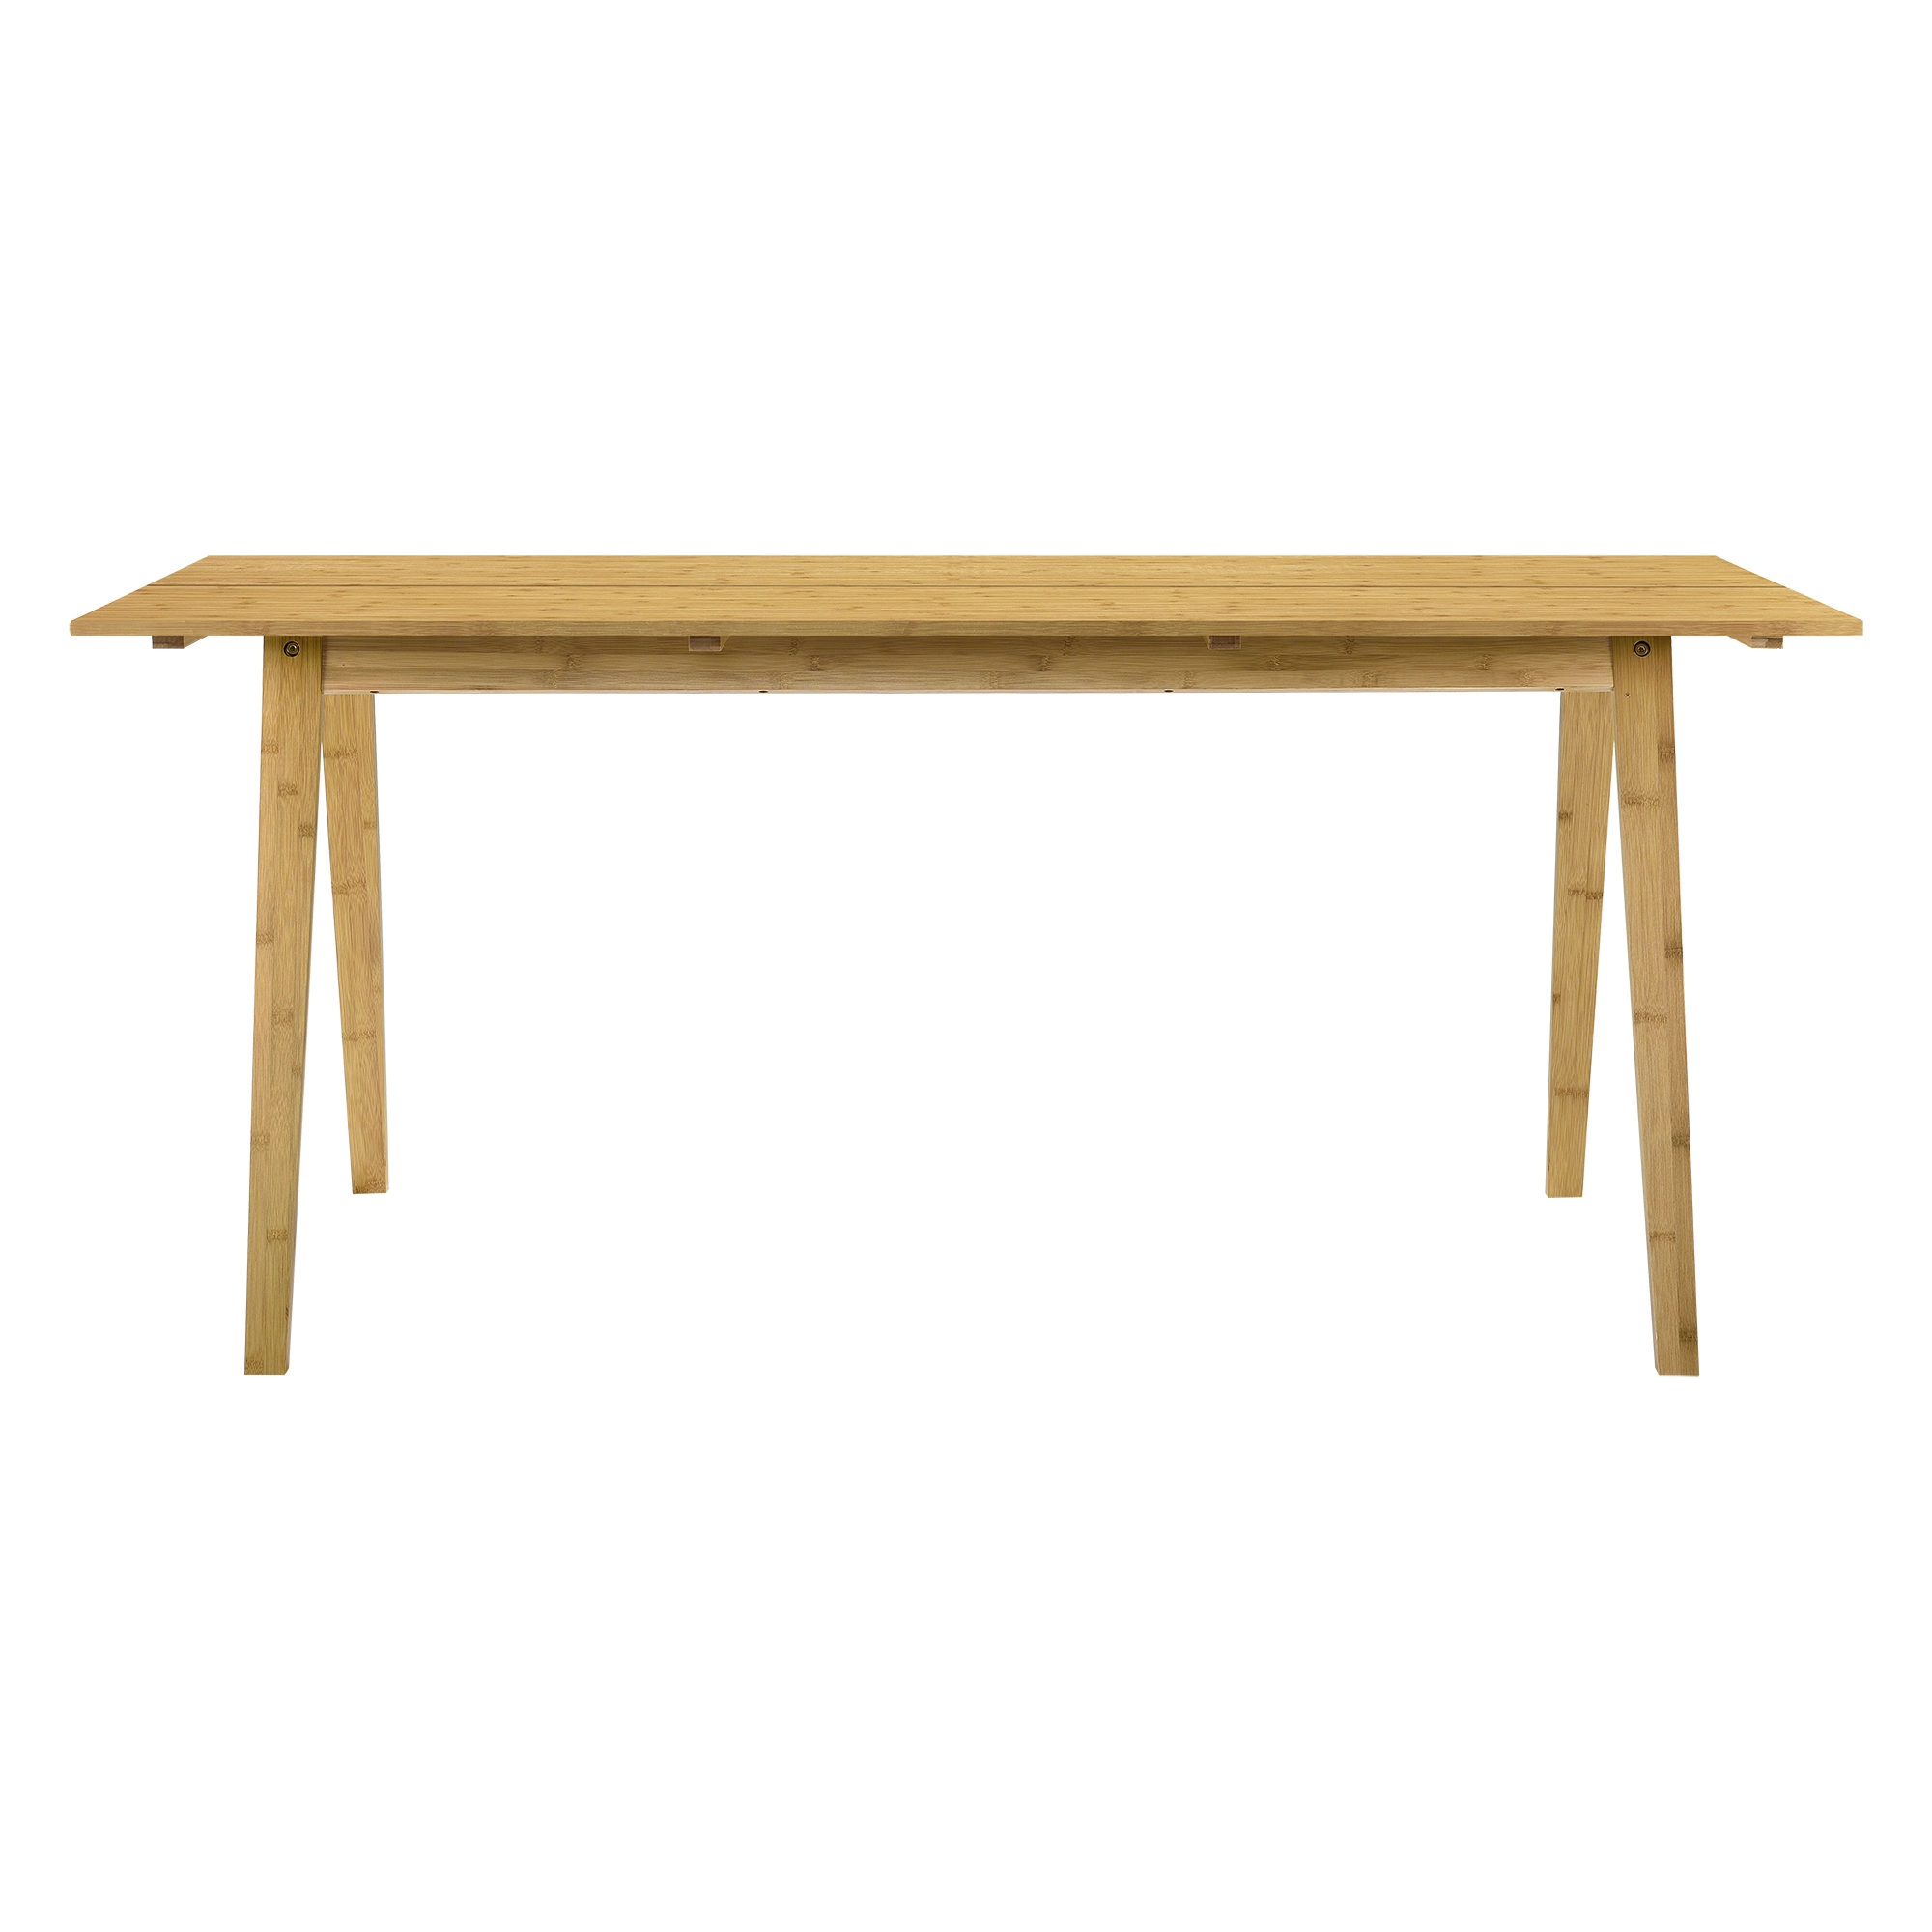 Design table de salle manger bambou 180x80cm for Table salle a manger 80 cm largeur